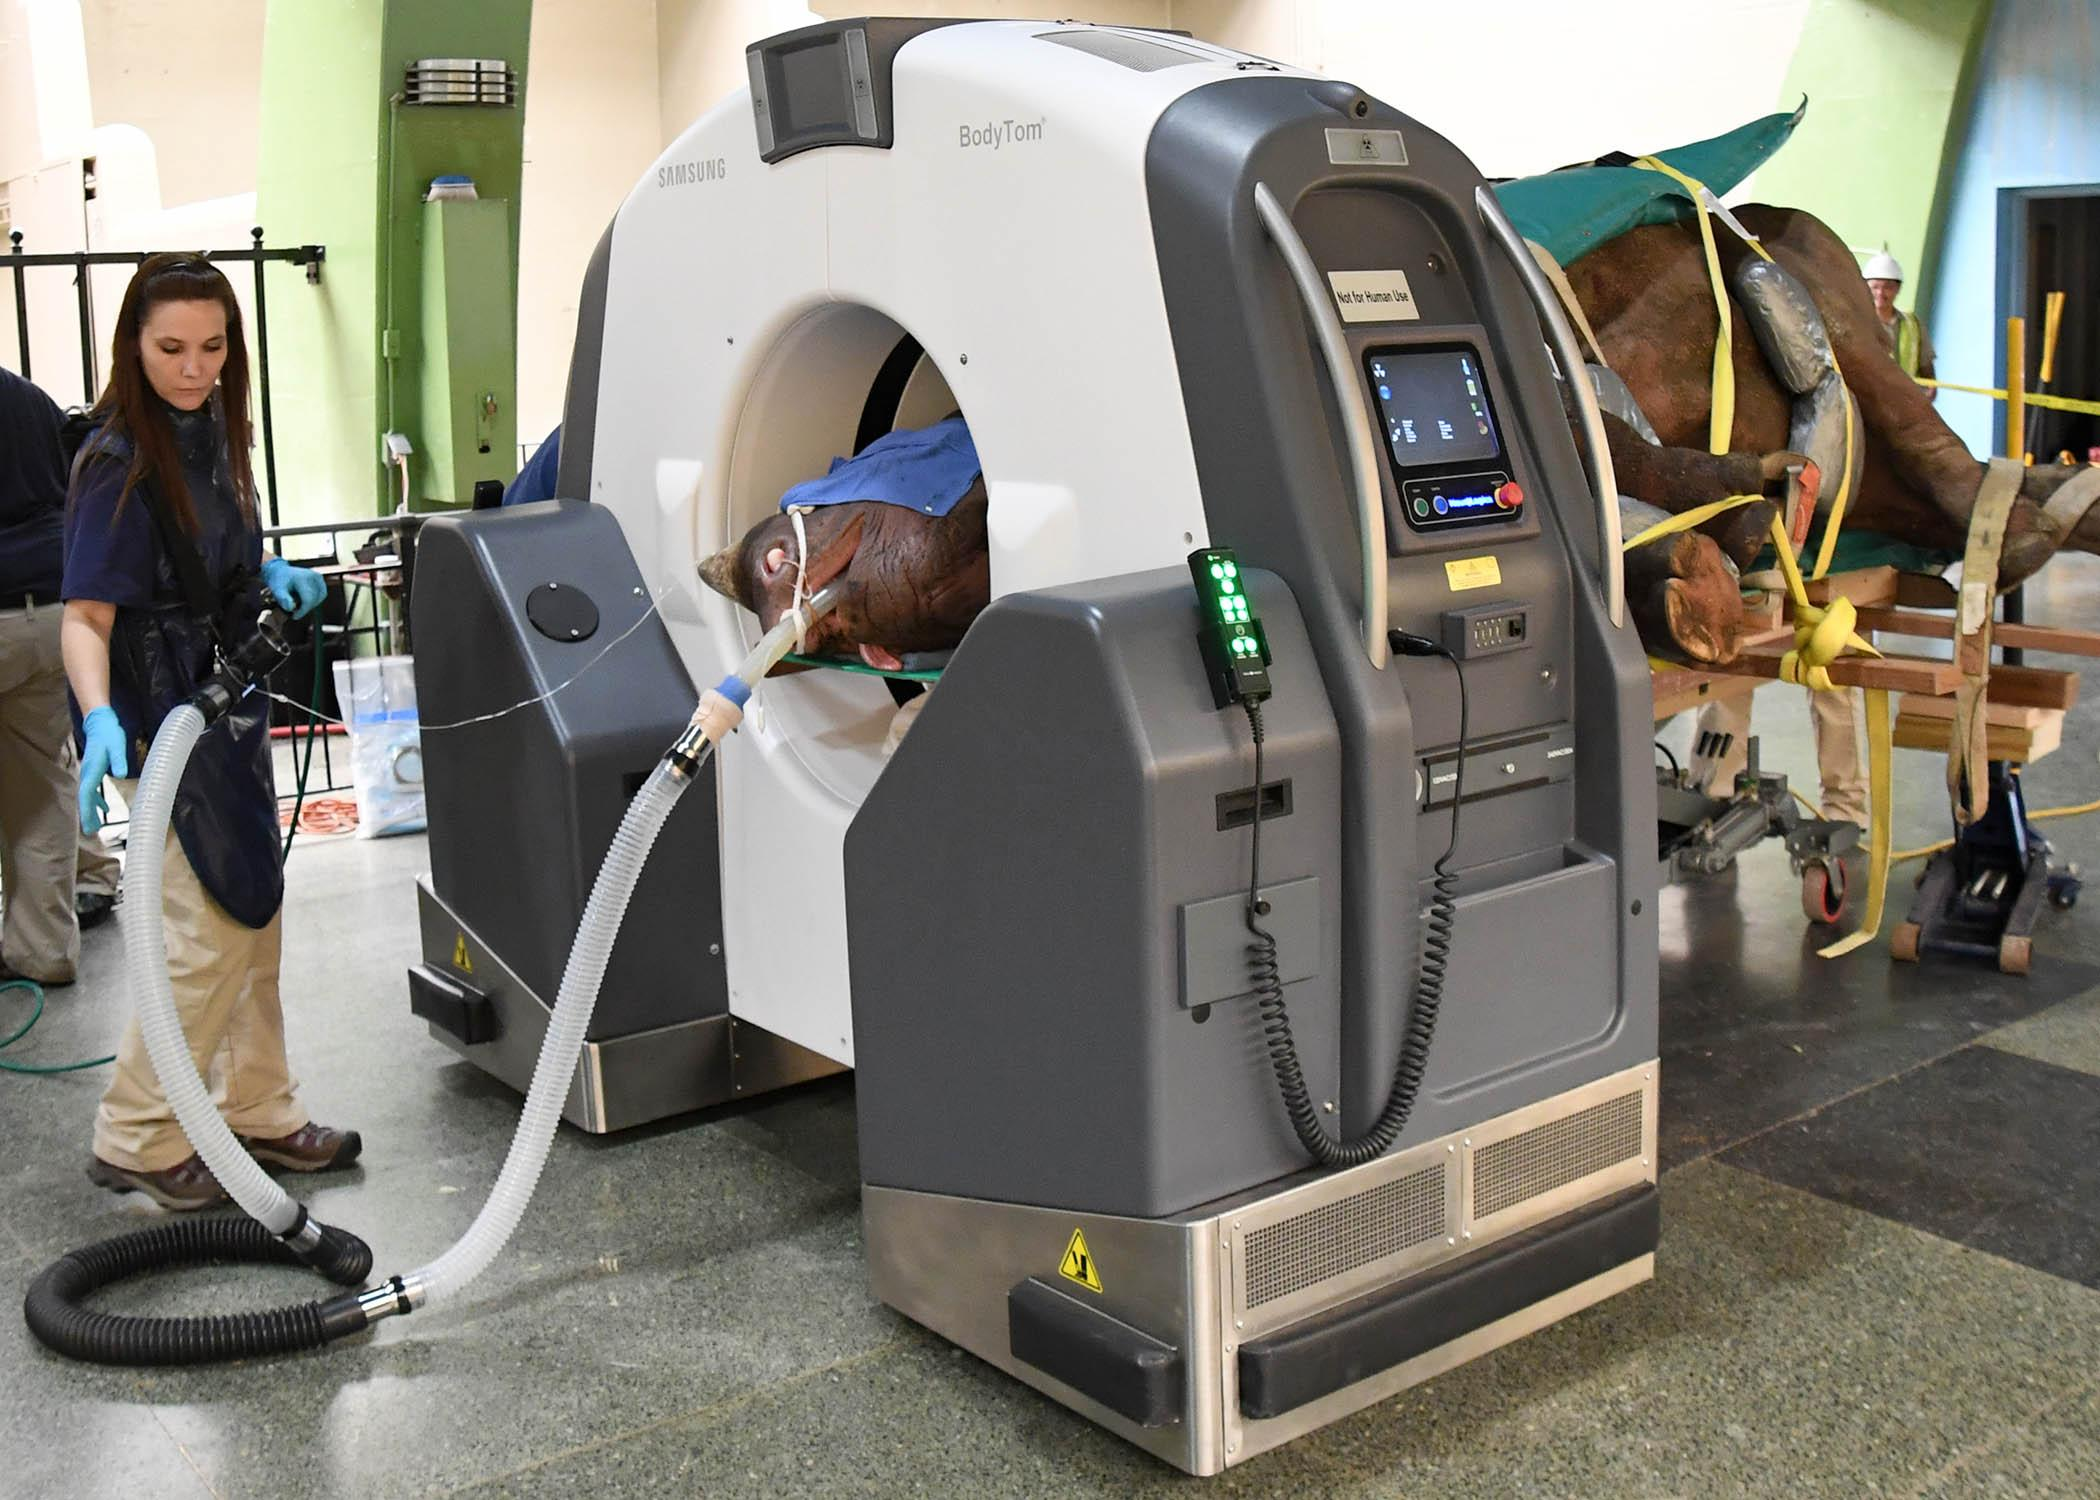 Michelle Soszynski, a senior veterinary technician at Brookfield Zoo, monitors Layla, a 7.5-year-old eastern black rhinoceros, as she receives a CT scan inside Brookfield Zoo's Pachyderm House. (Jim Schulz / Chicago Zoological Society)